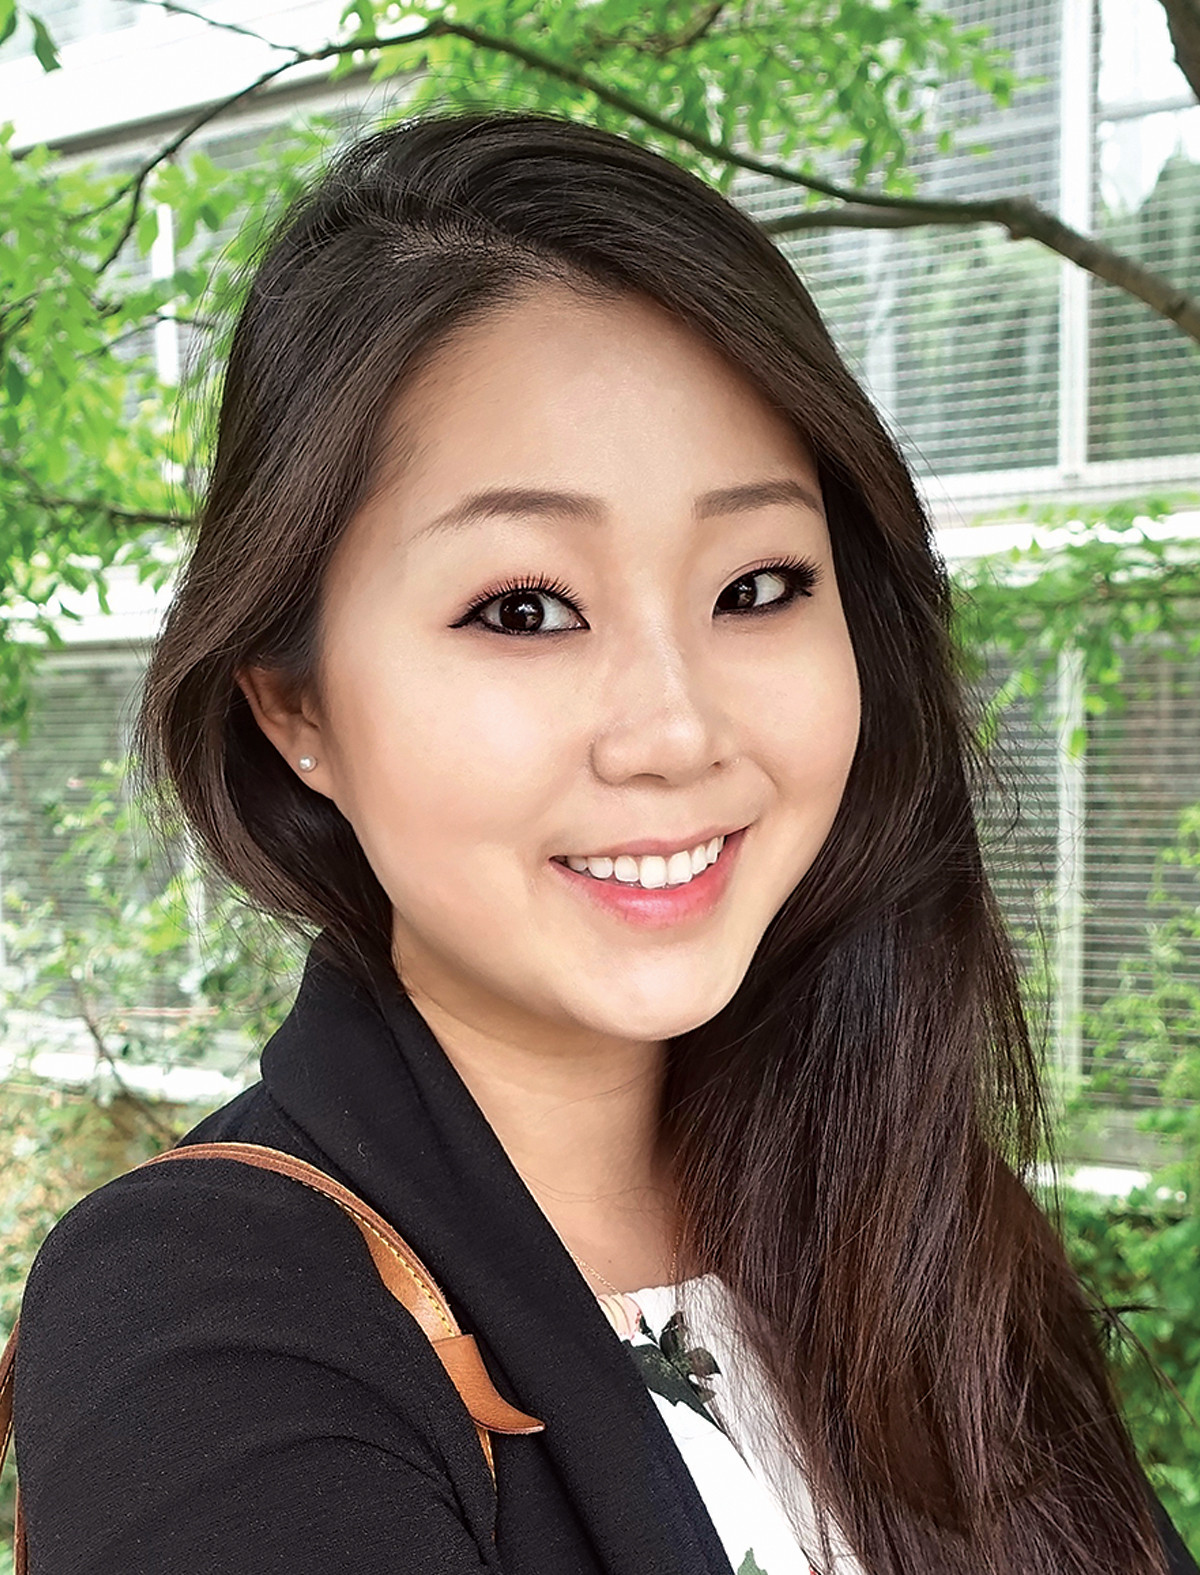 Sae World Congress >> SAE International Project Manager Annie Chang to Moderate Session on Road Safety Analysis at ITS ...